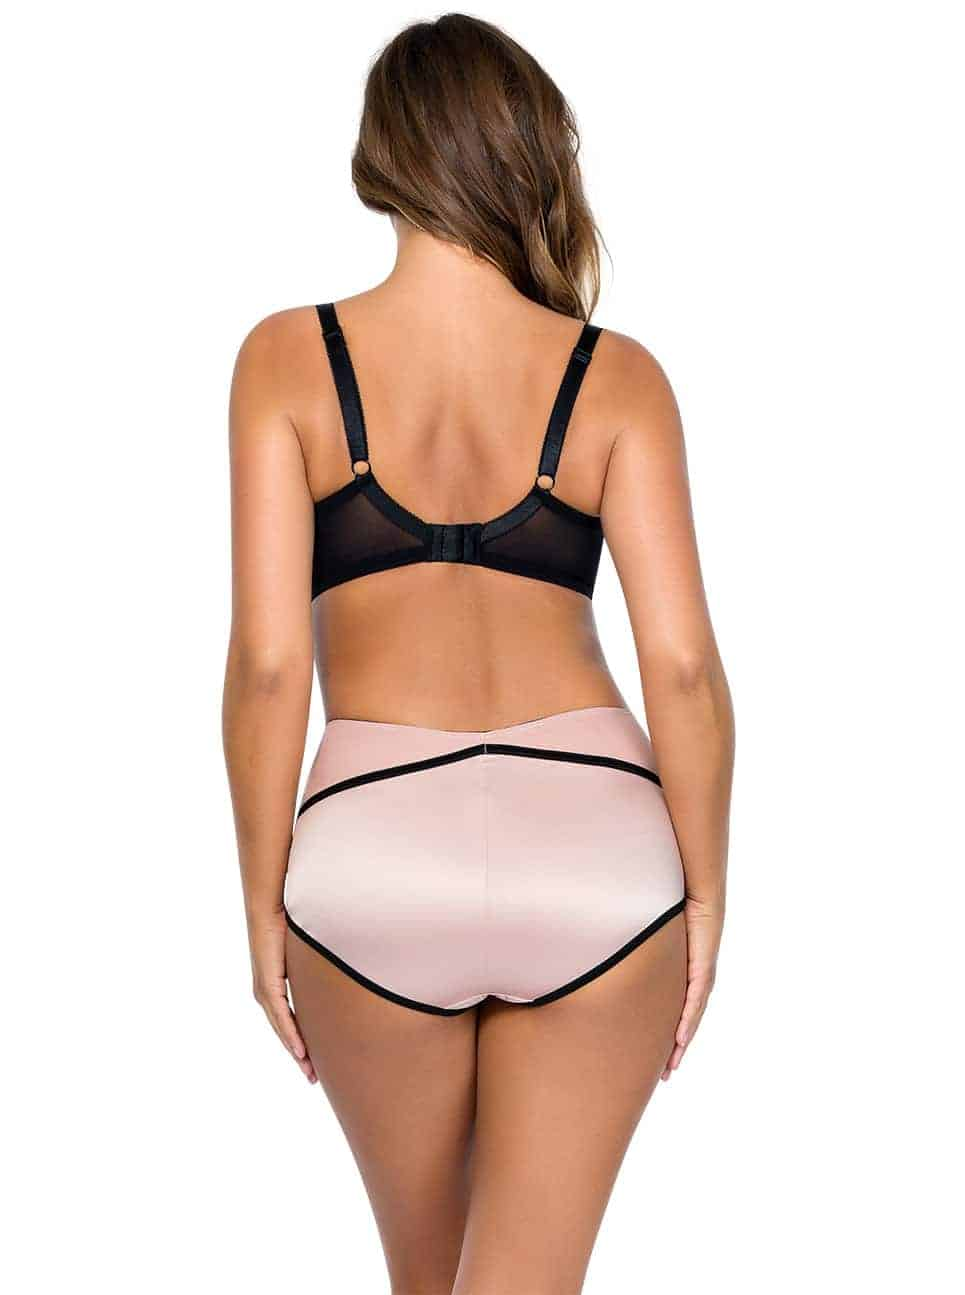 Charlotte PaddedBra6901 HighwaistBrief6917 DustyRoseBlack Back - Charlotte Highwaist Brief - Dusty Rose w Black - 6917